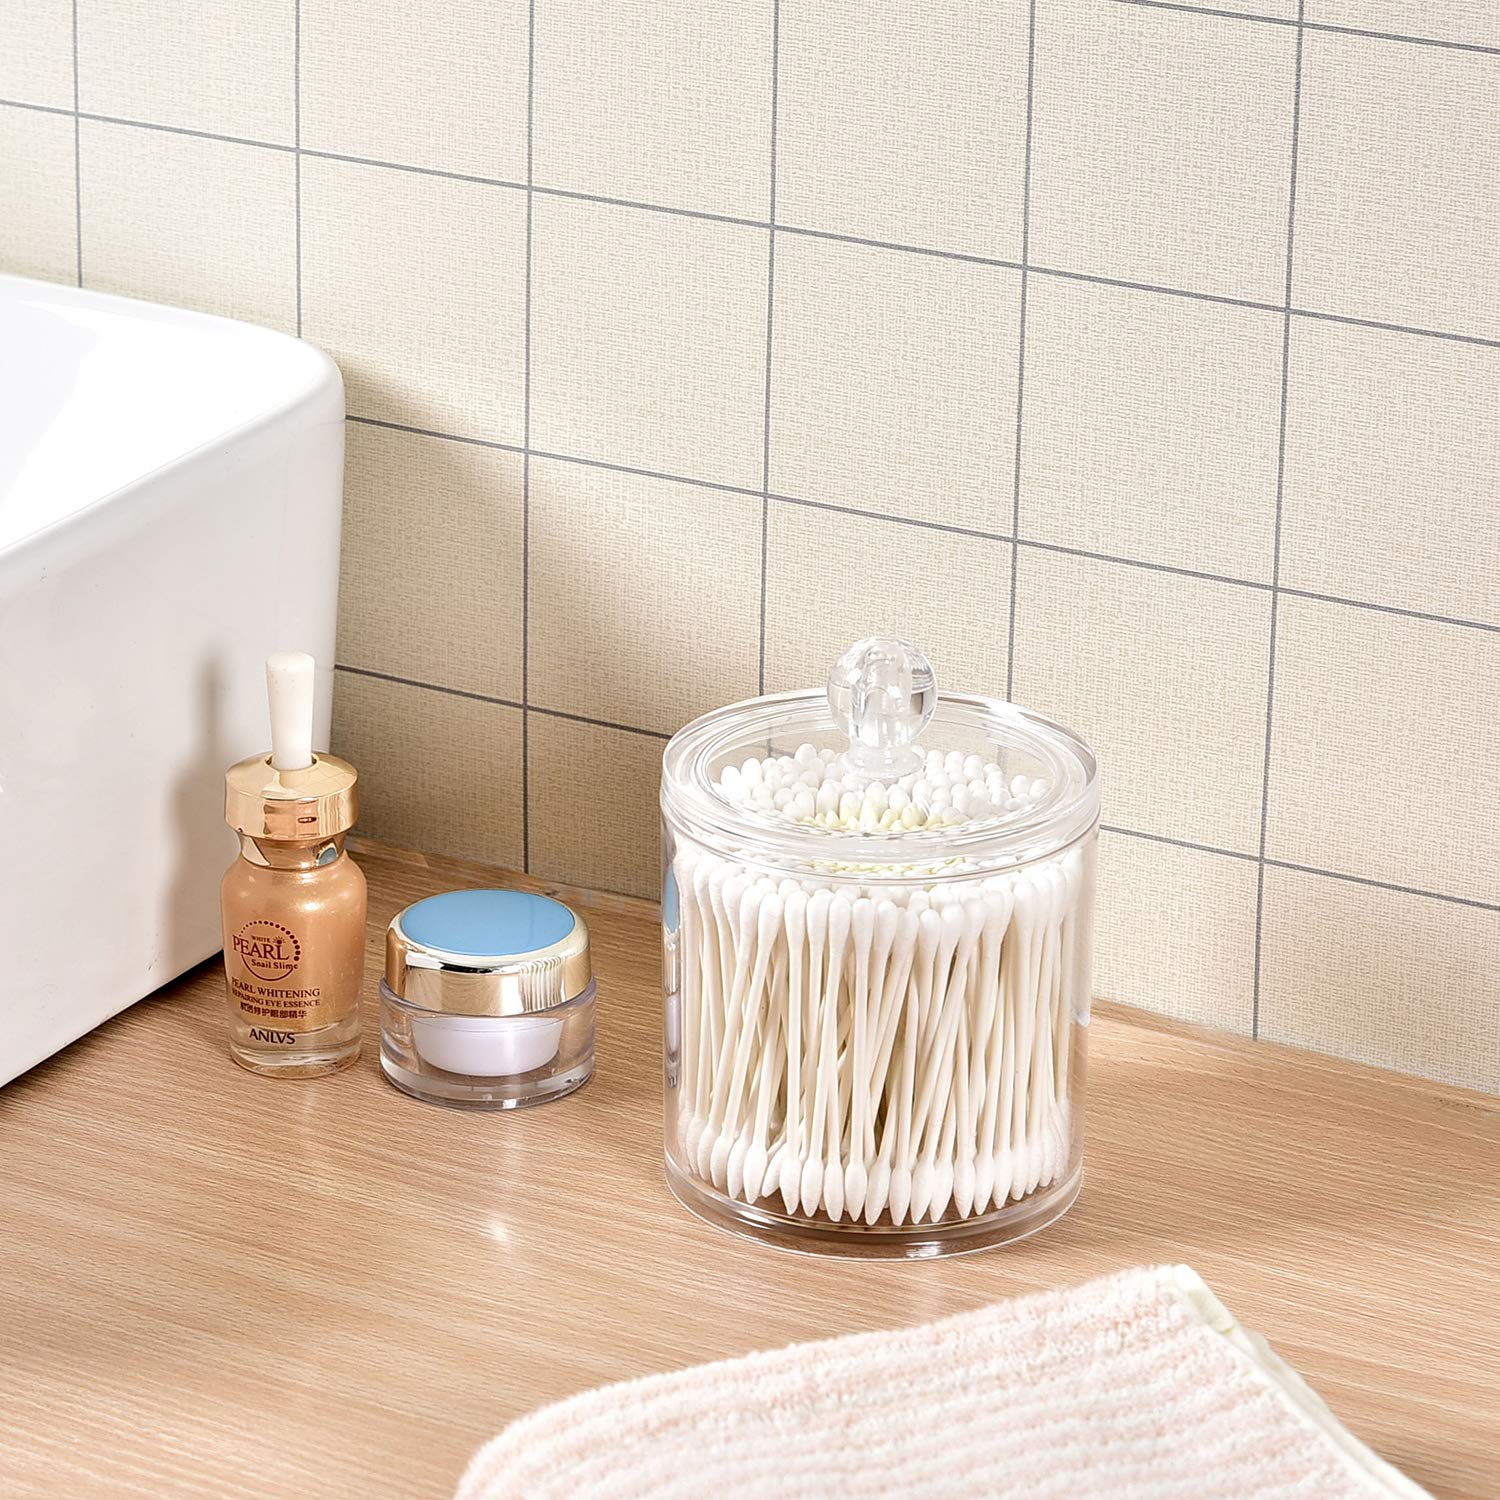 Bathroom Cotton Swab Organizer Yoelrsa Acrylic Cotton Ball and Q-Tips Holder,Round Cotton Swabs Makeup Storage Box with Lid Apothecary Canister Jar 6008